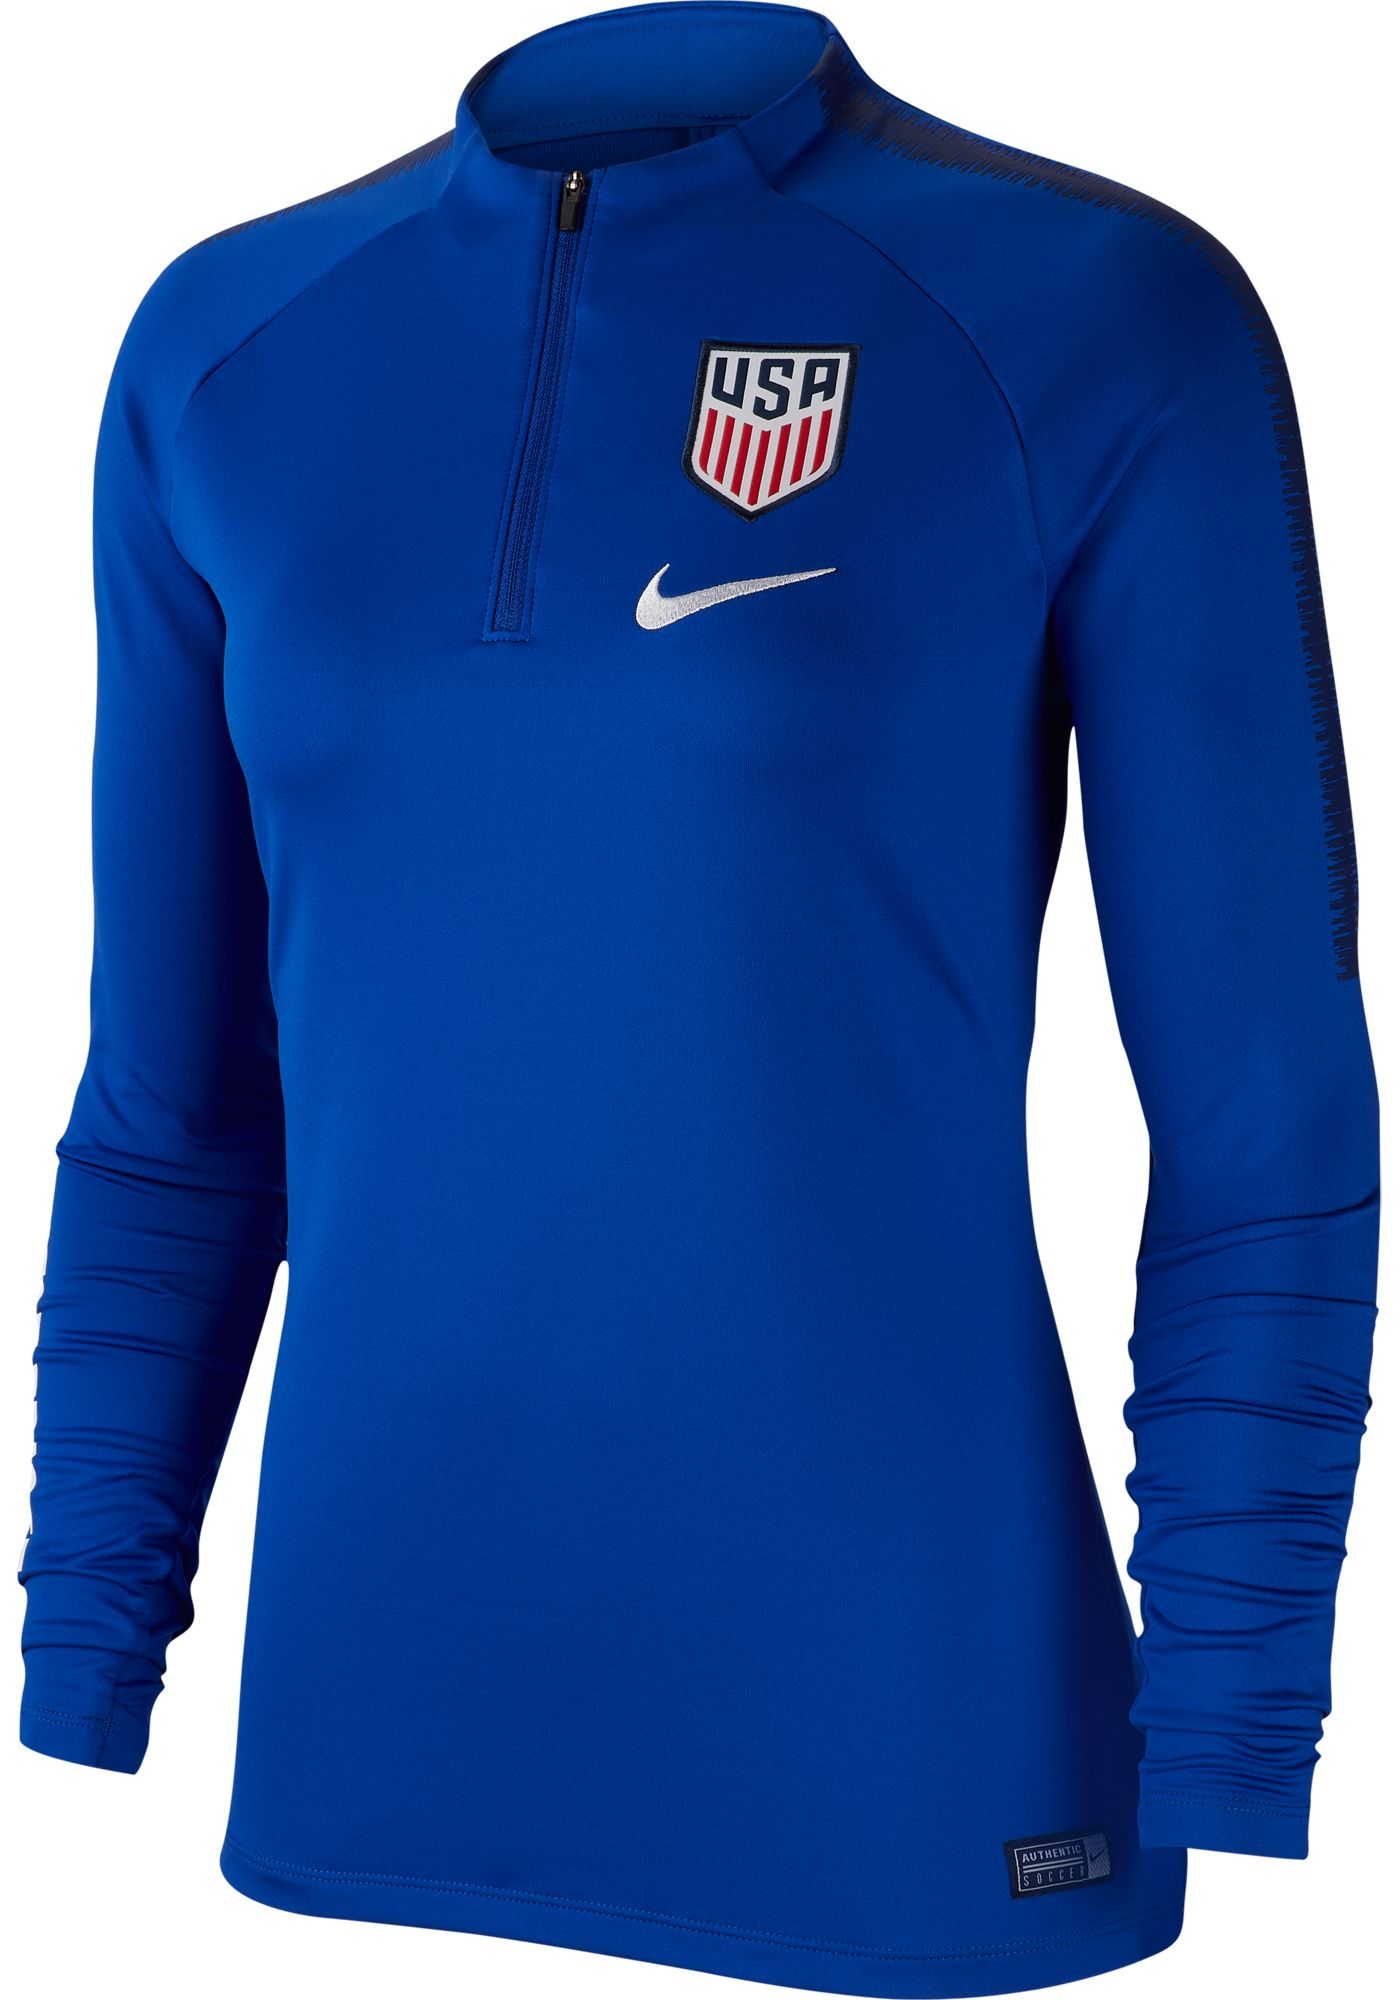 Nike Women's 2019 FIFA Women's World Cup USA Soccer Squad Blue Quarter-Zip Pullover